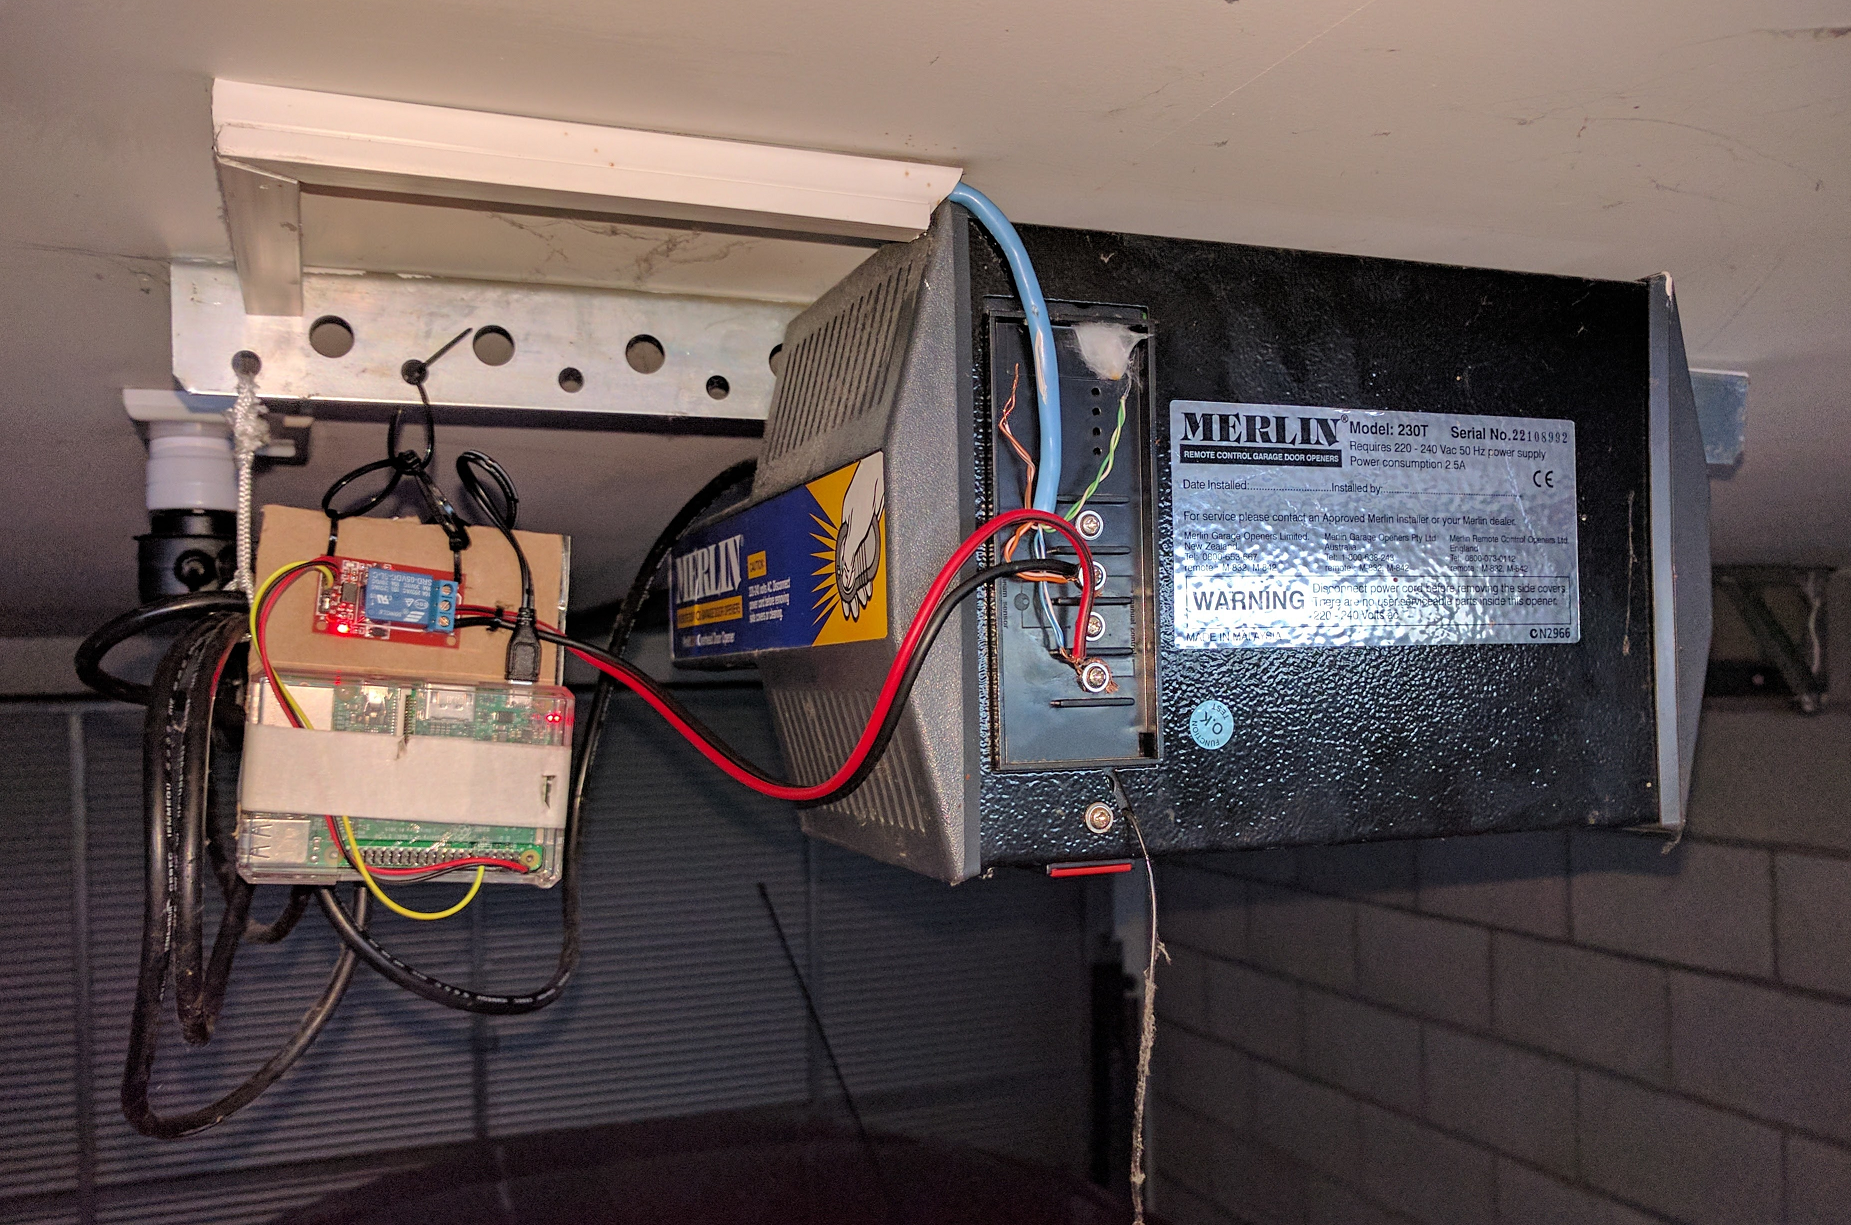 Raspberry Pi Garage Door Opener For Merlin 230t Using Aws Iot And Wiring Diagram Supply